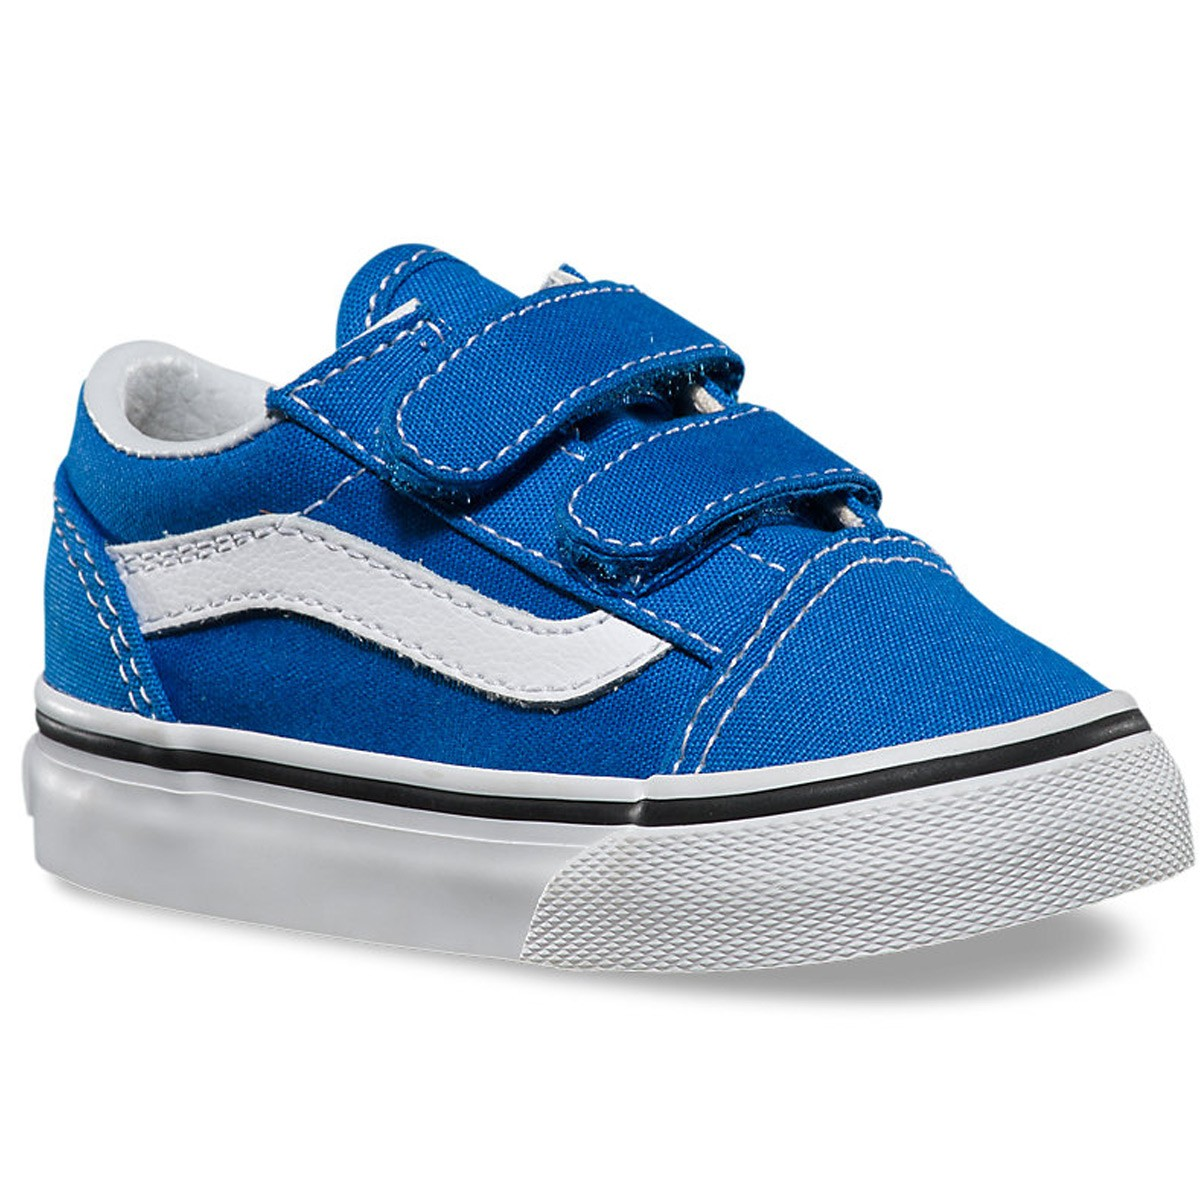 Vans Old Skool V Toddler Little Kid Shoes